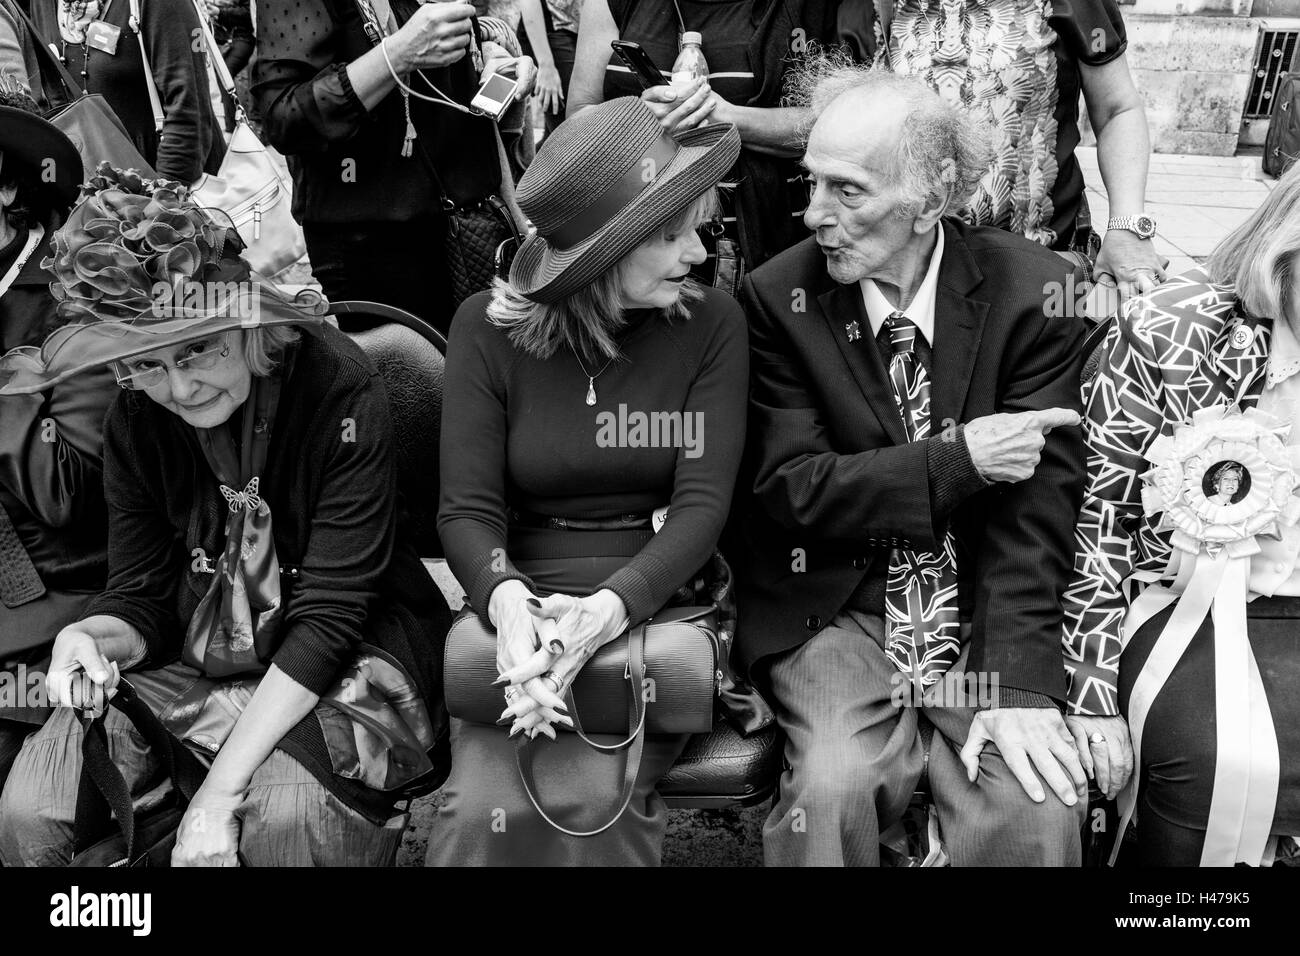 Londoners Chatting At The Pearly Kings and Queens' Harvest Festival, Held Annually At The Guildhall Yard, London, - Stock Image